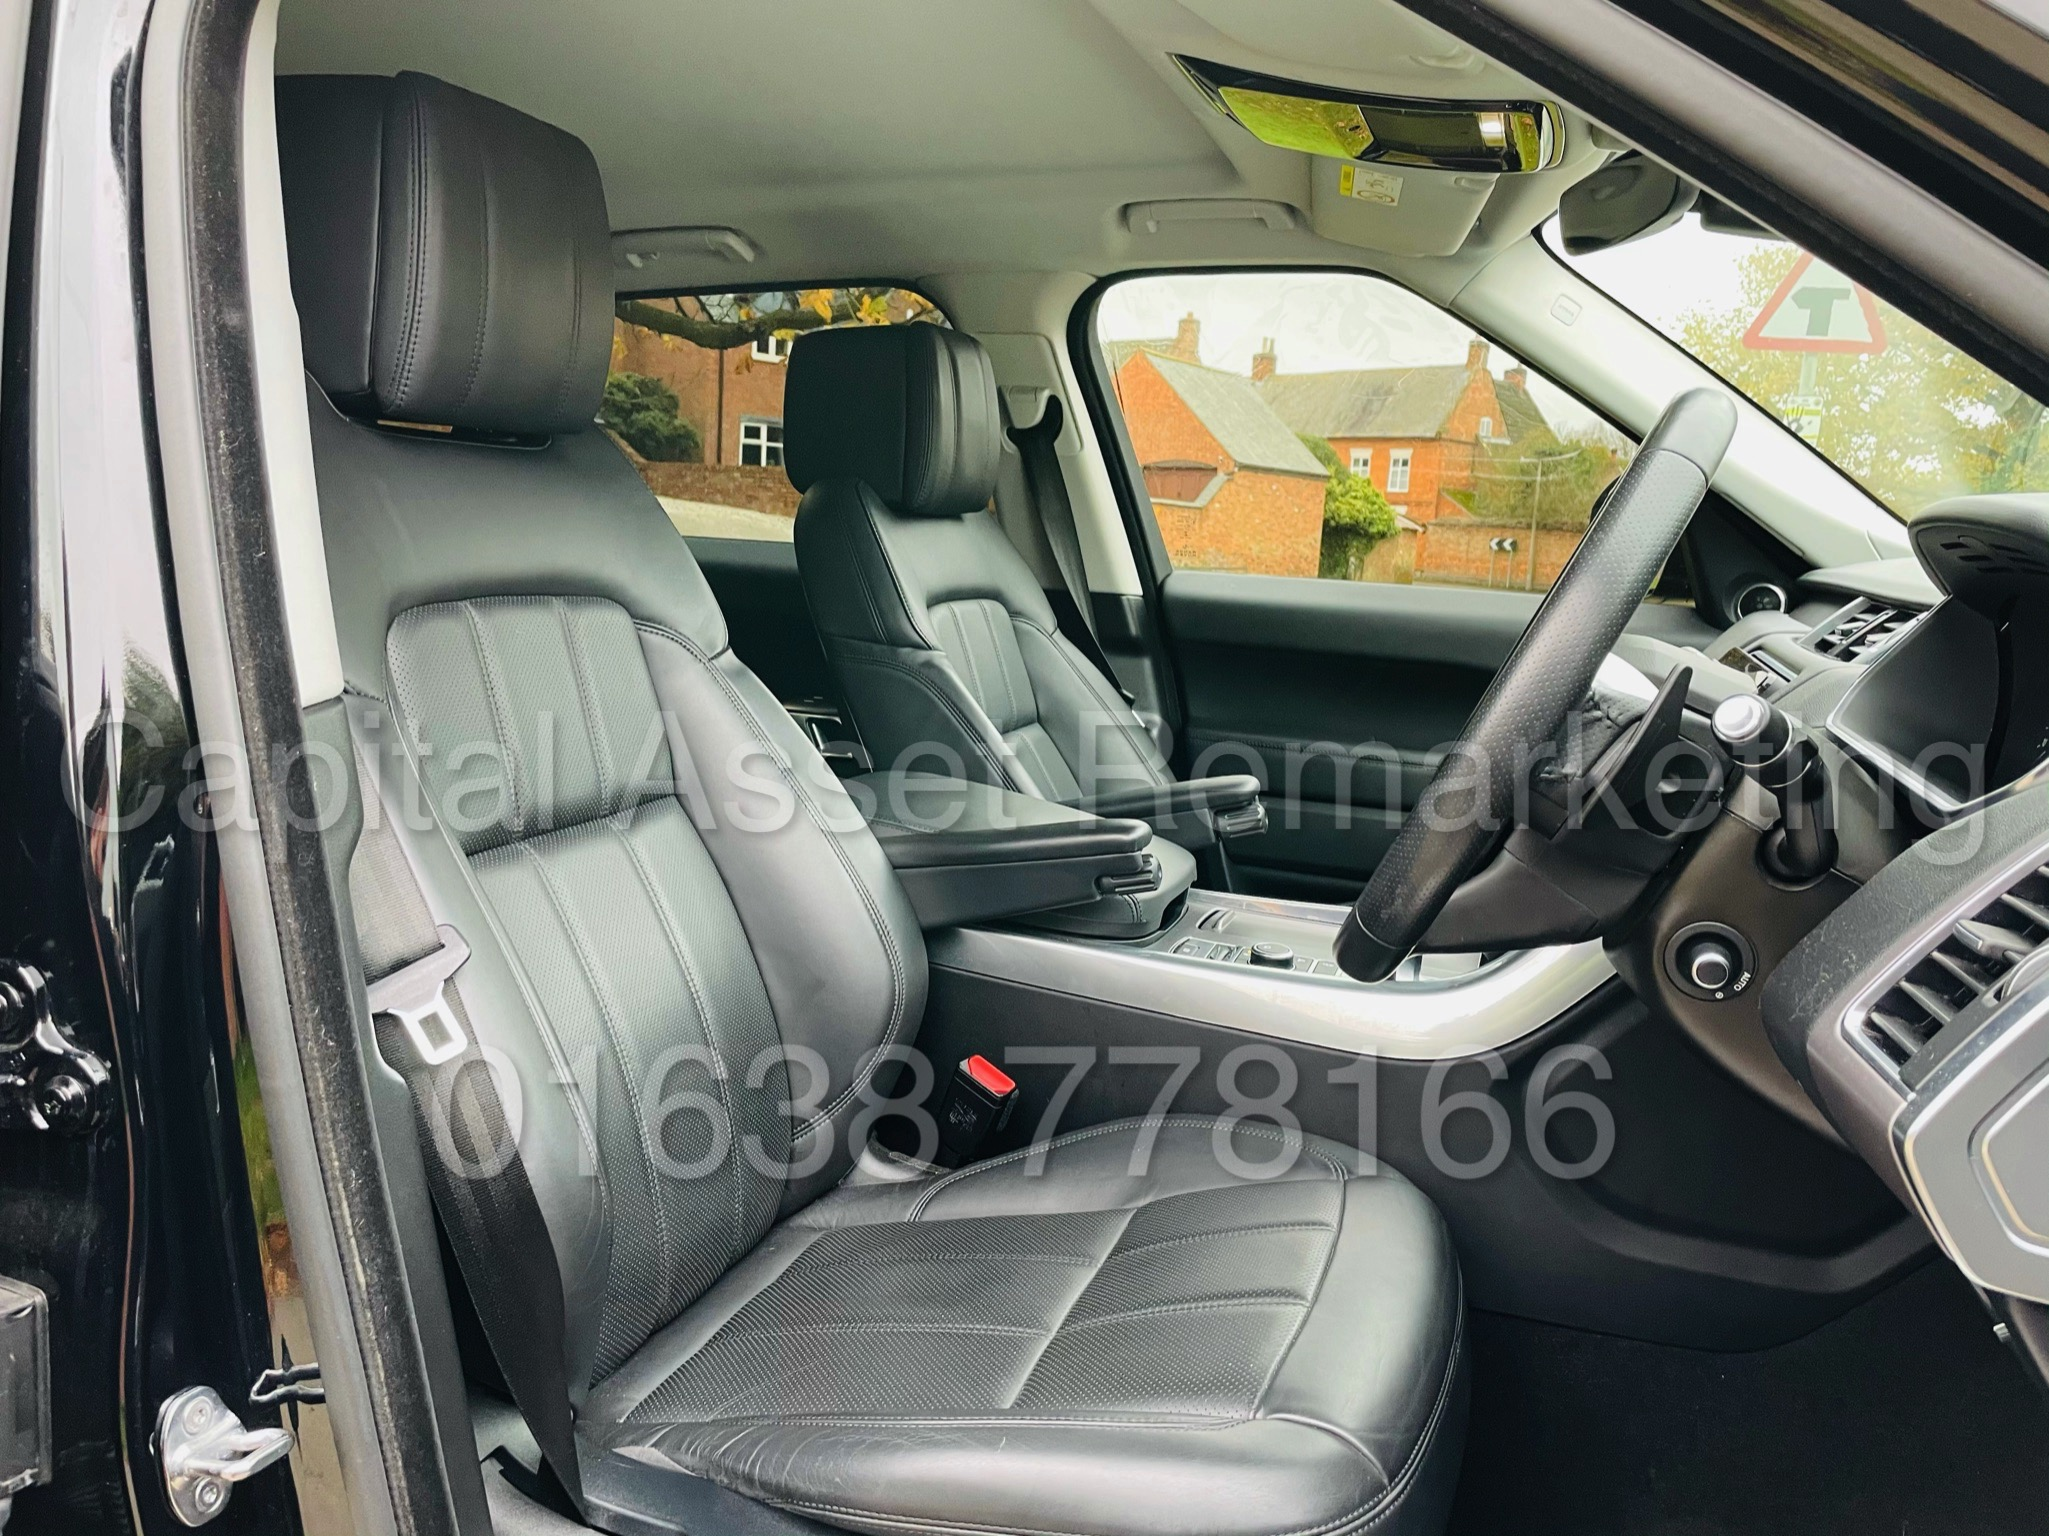 RANGE ROVER SPORT *HSE EDITION* SUV (2019 MODEL) '3.0 SDV6 - 306 BHP - 8 SPEED AUTO' *FULLY LOADED* - Image 40 of 56